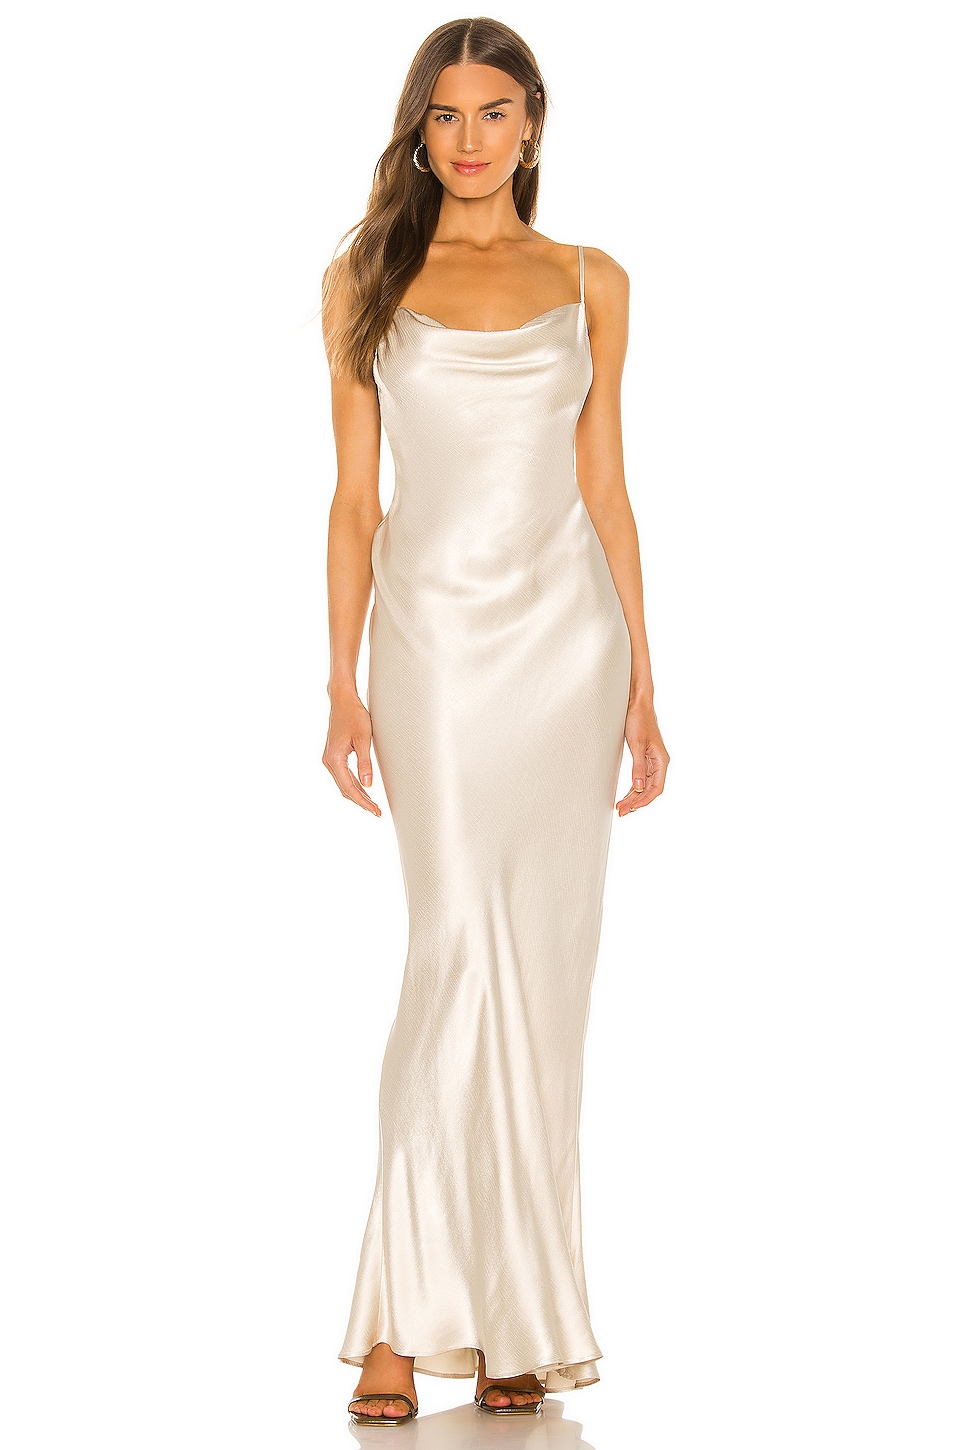 Frederic Dress             BEC&BRIDGE                                                                                                       CA$ 393.19 1